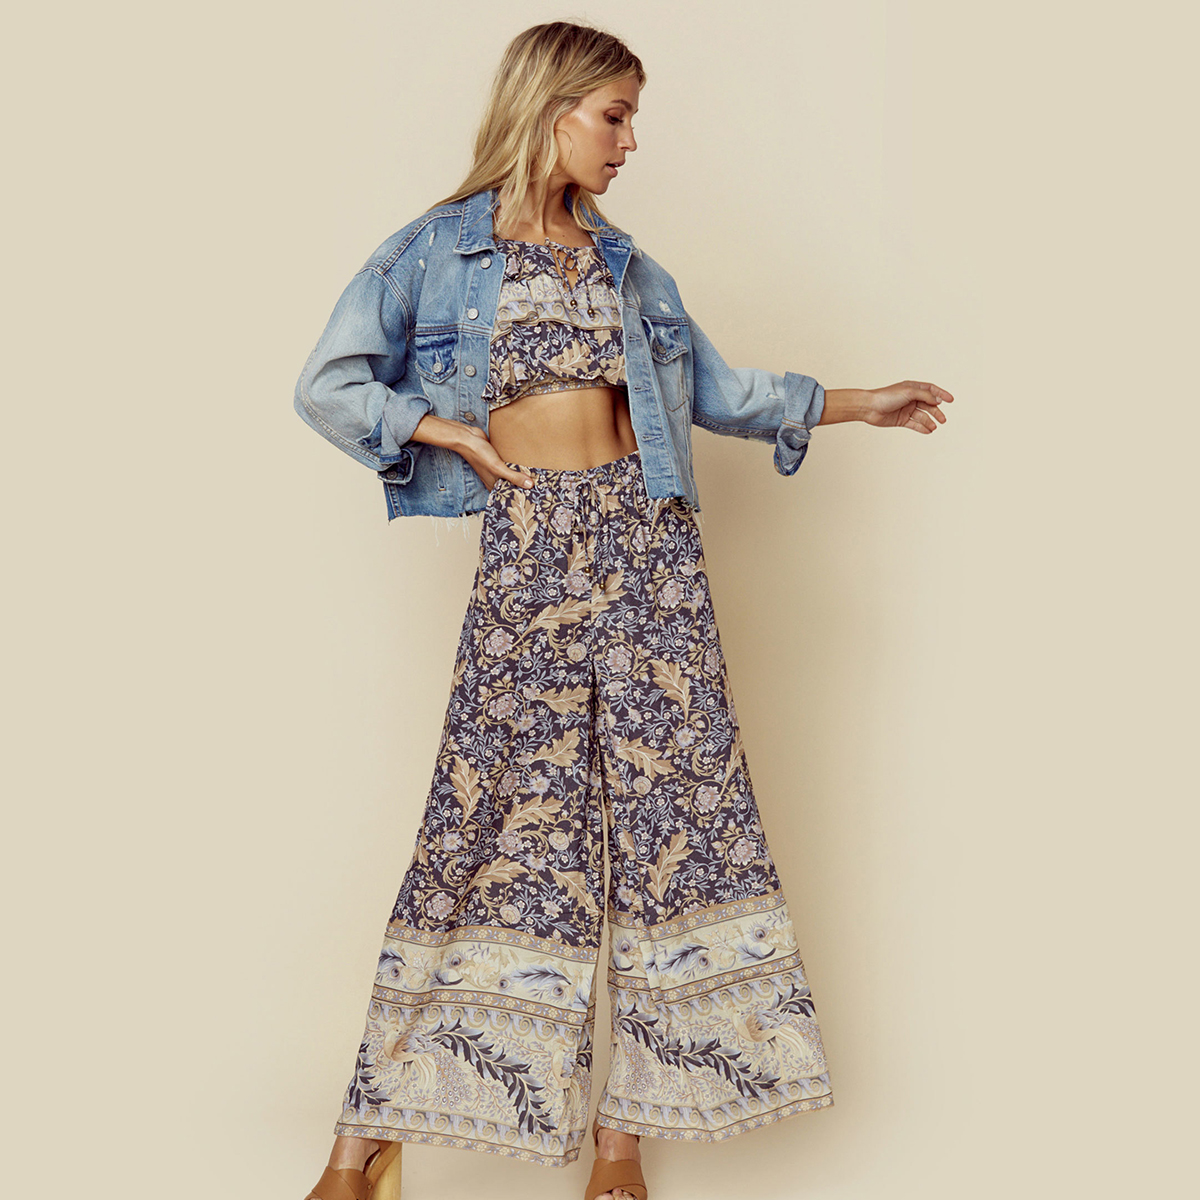 Oasis Black Floral Maxi   Pants   Women 2019 Summer High Waist Retro Boho   Wide     Leg     Pants   Ladies Vintage Bohemian Beach Long Trousers